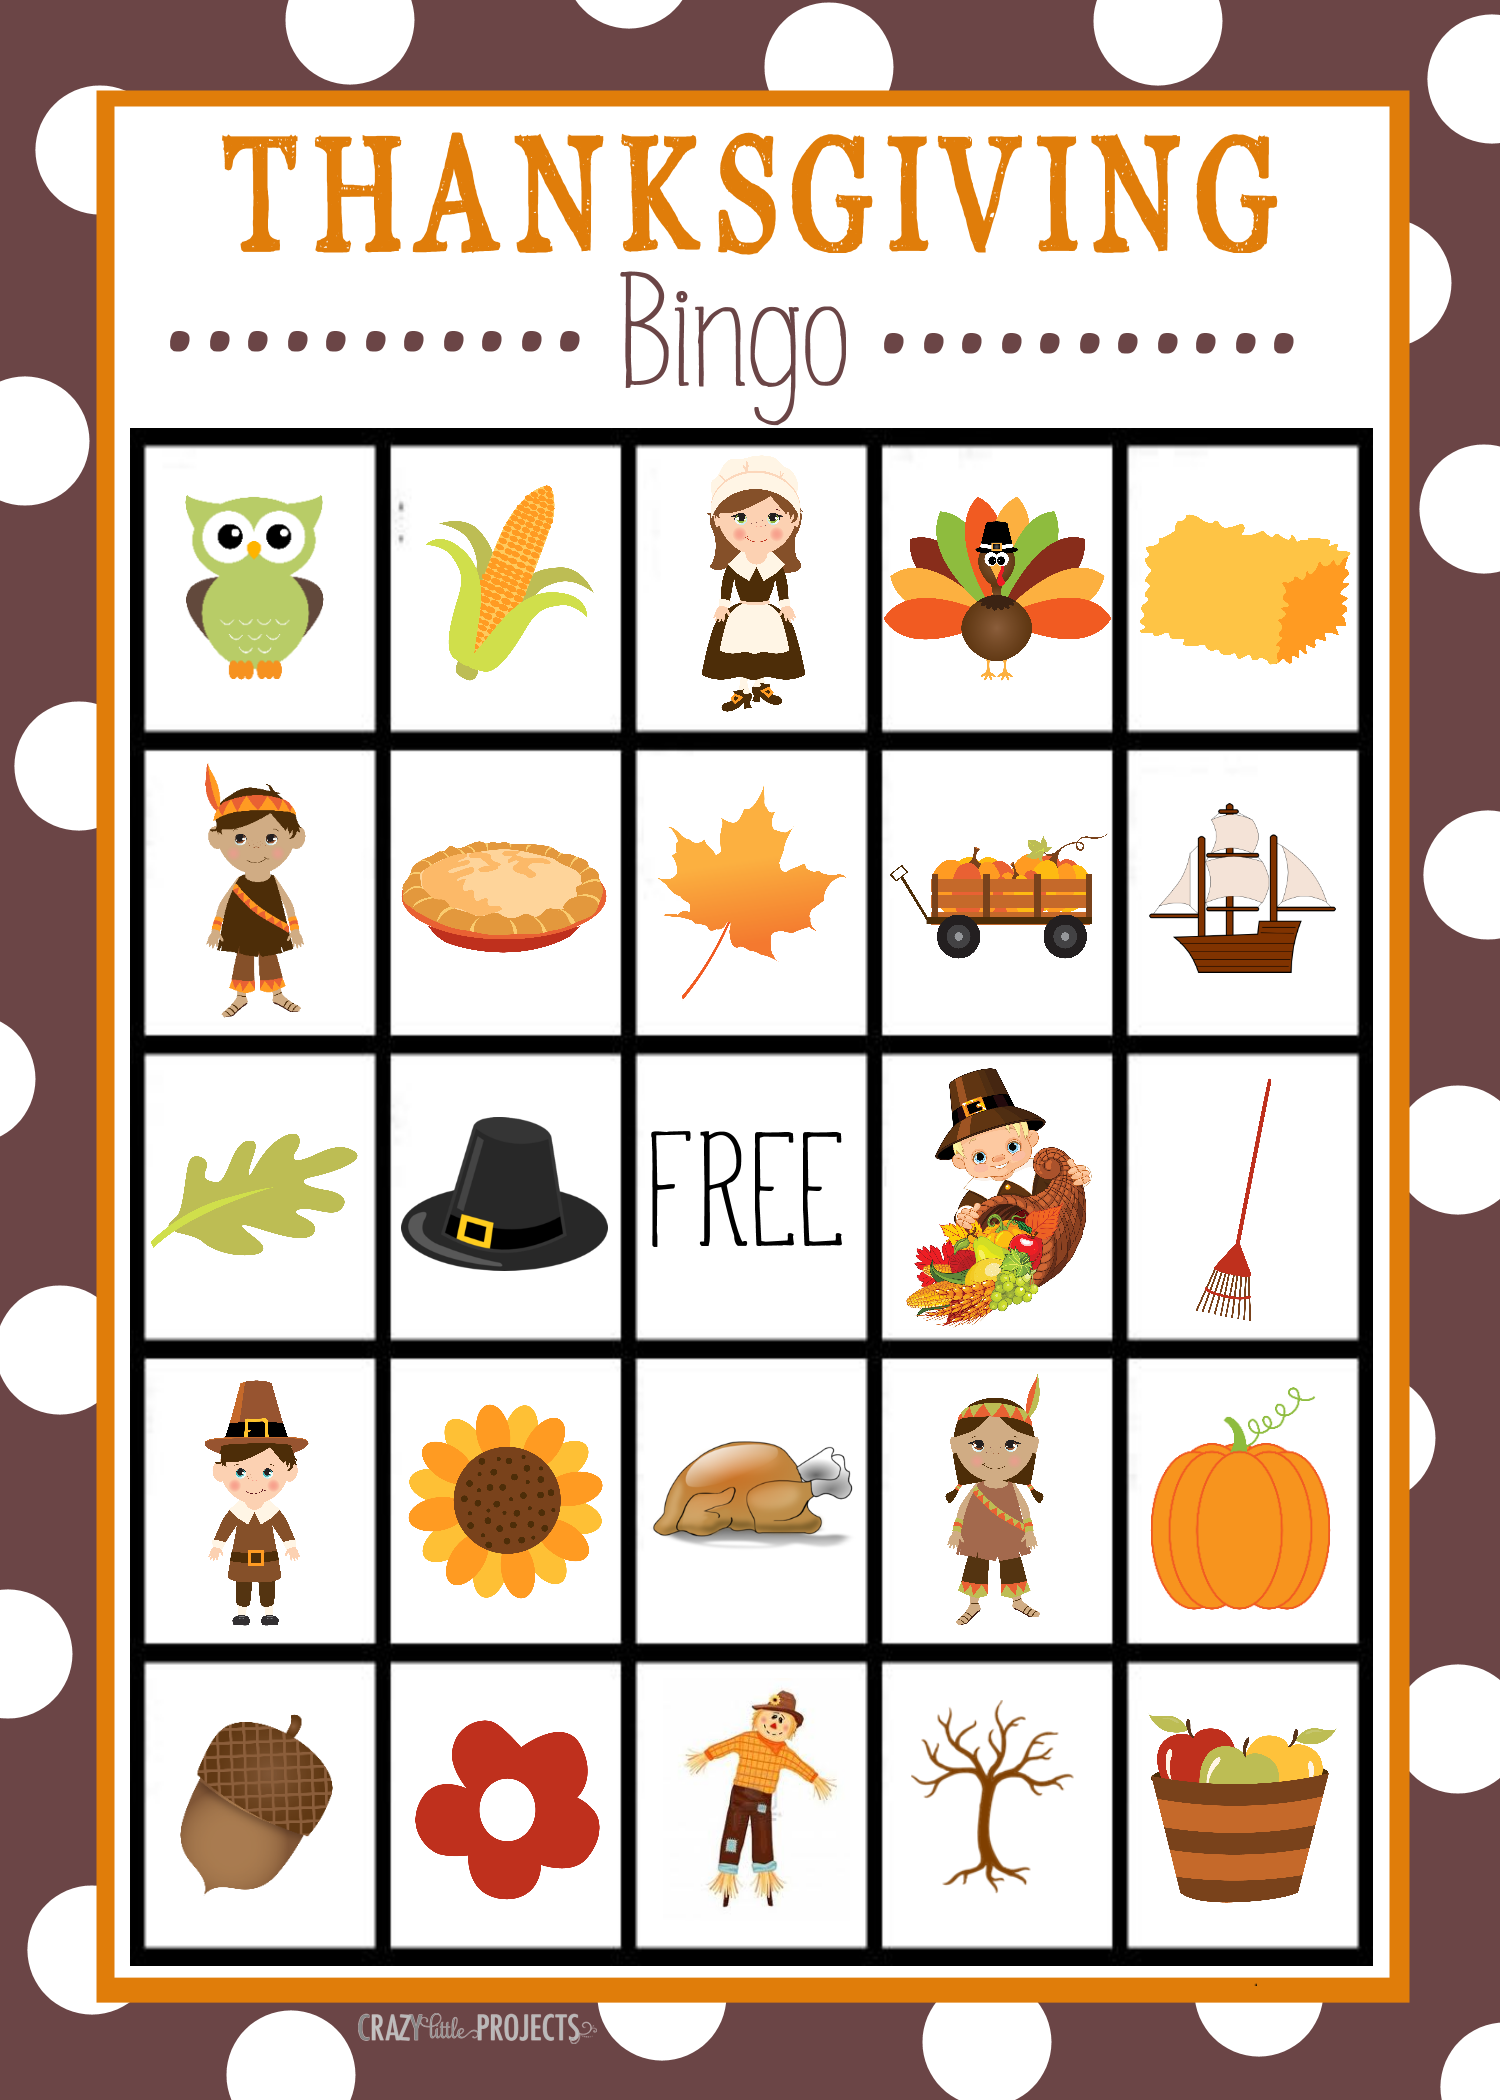 6 Images of Printable Thanksgiving Bingo Cards